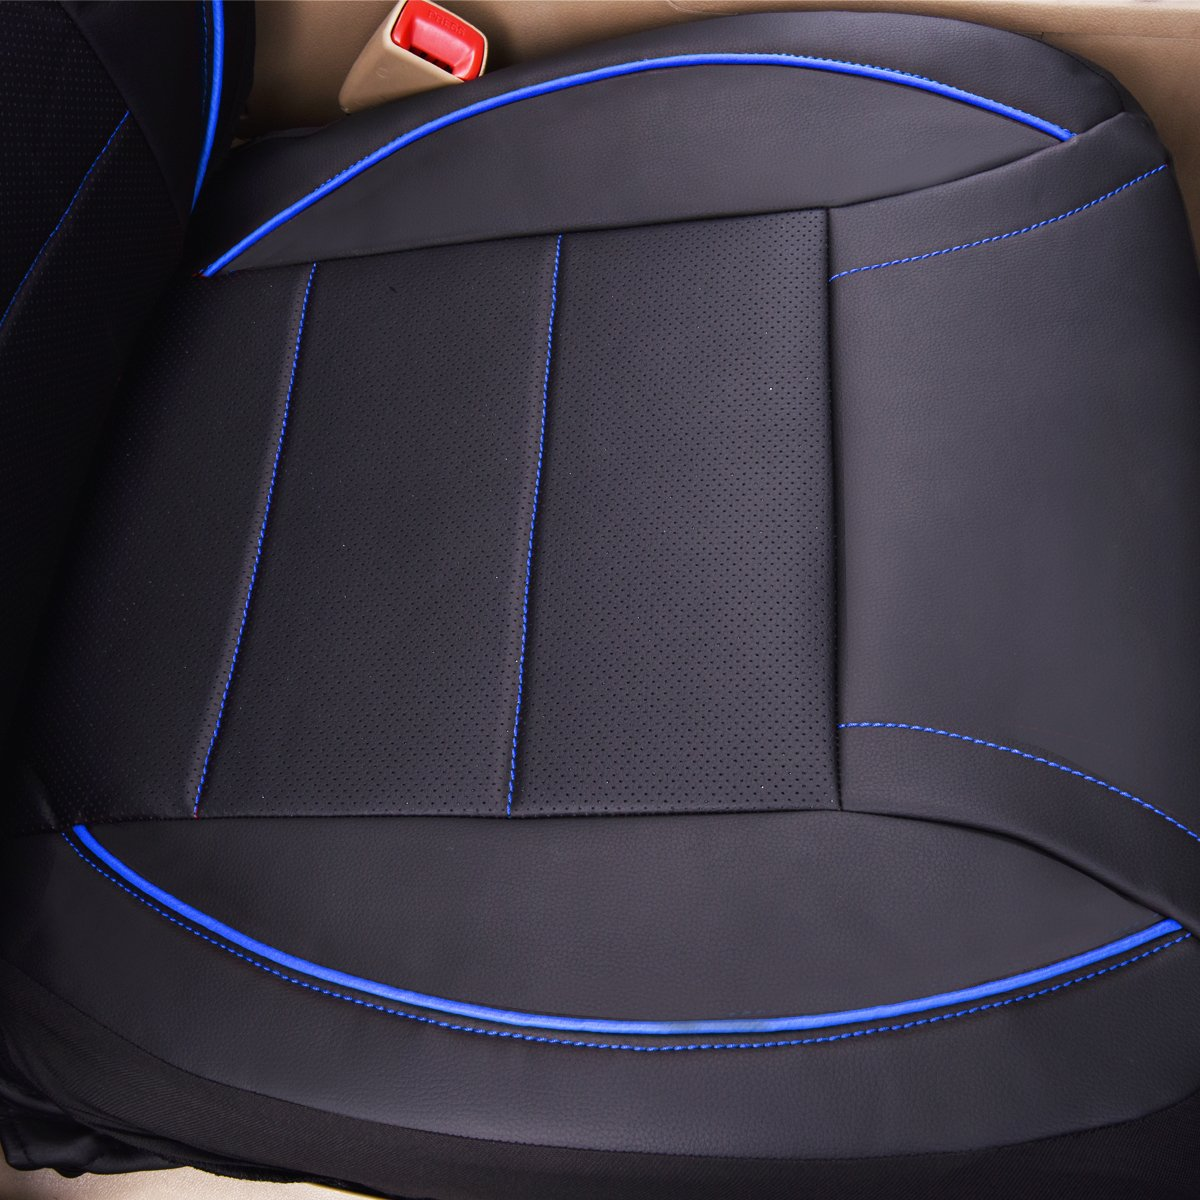 11PCS, Black and Blue CAR PASS Universal FIT Piping Leather Car Seat Cover LJ for suvs,Van,Trucks,Airbag Compatible,Inside Zipper Design and Reserved Opening Holes